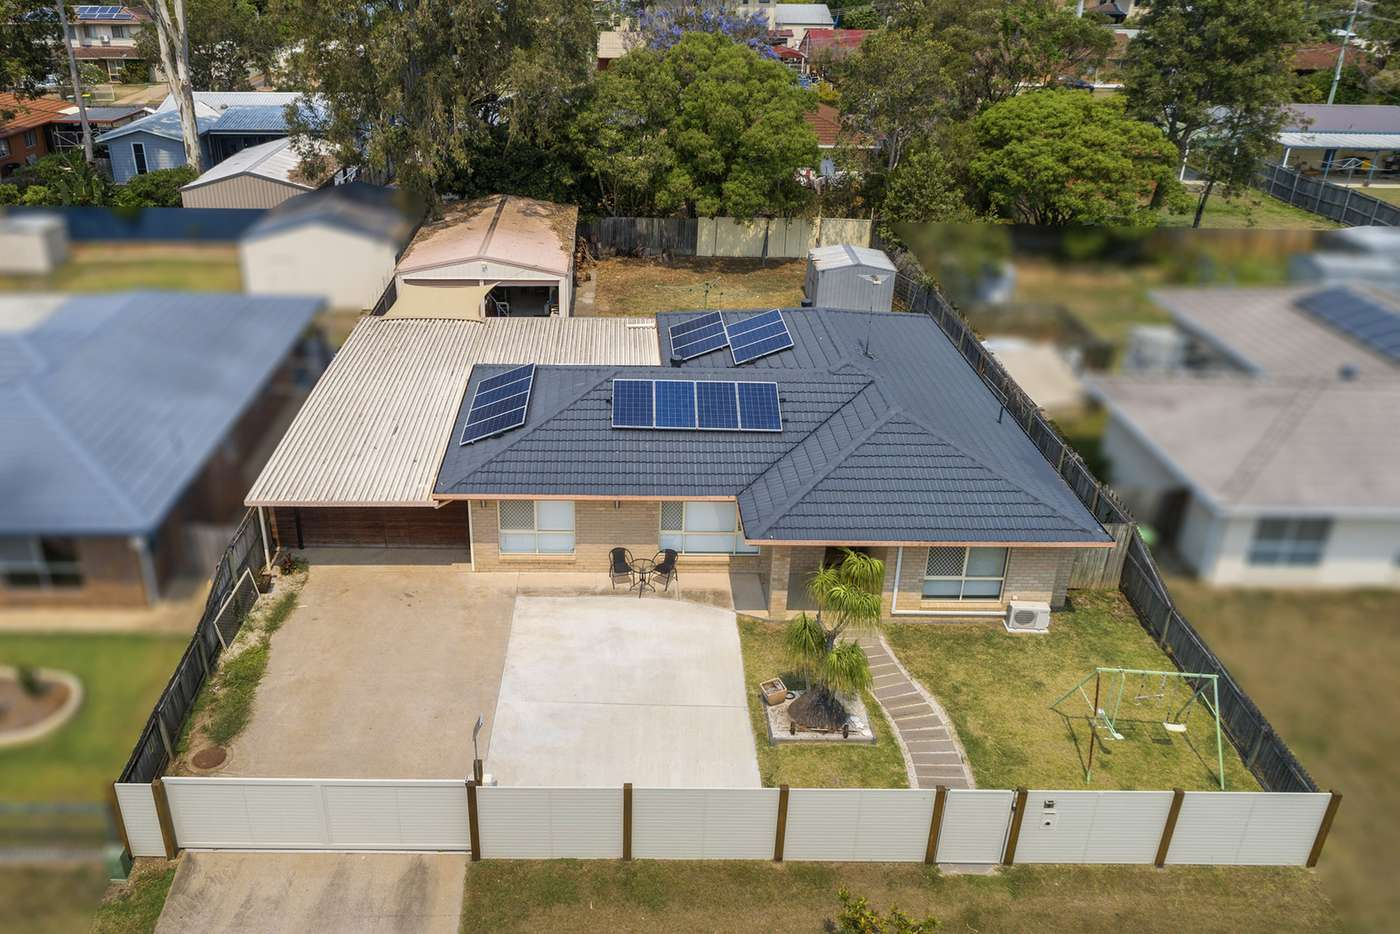 Main view of Homely house listing, 5 Shonagh Court, Birkdale, QLD 4159